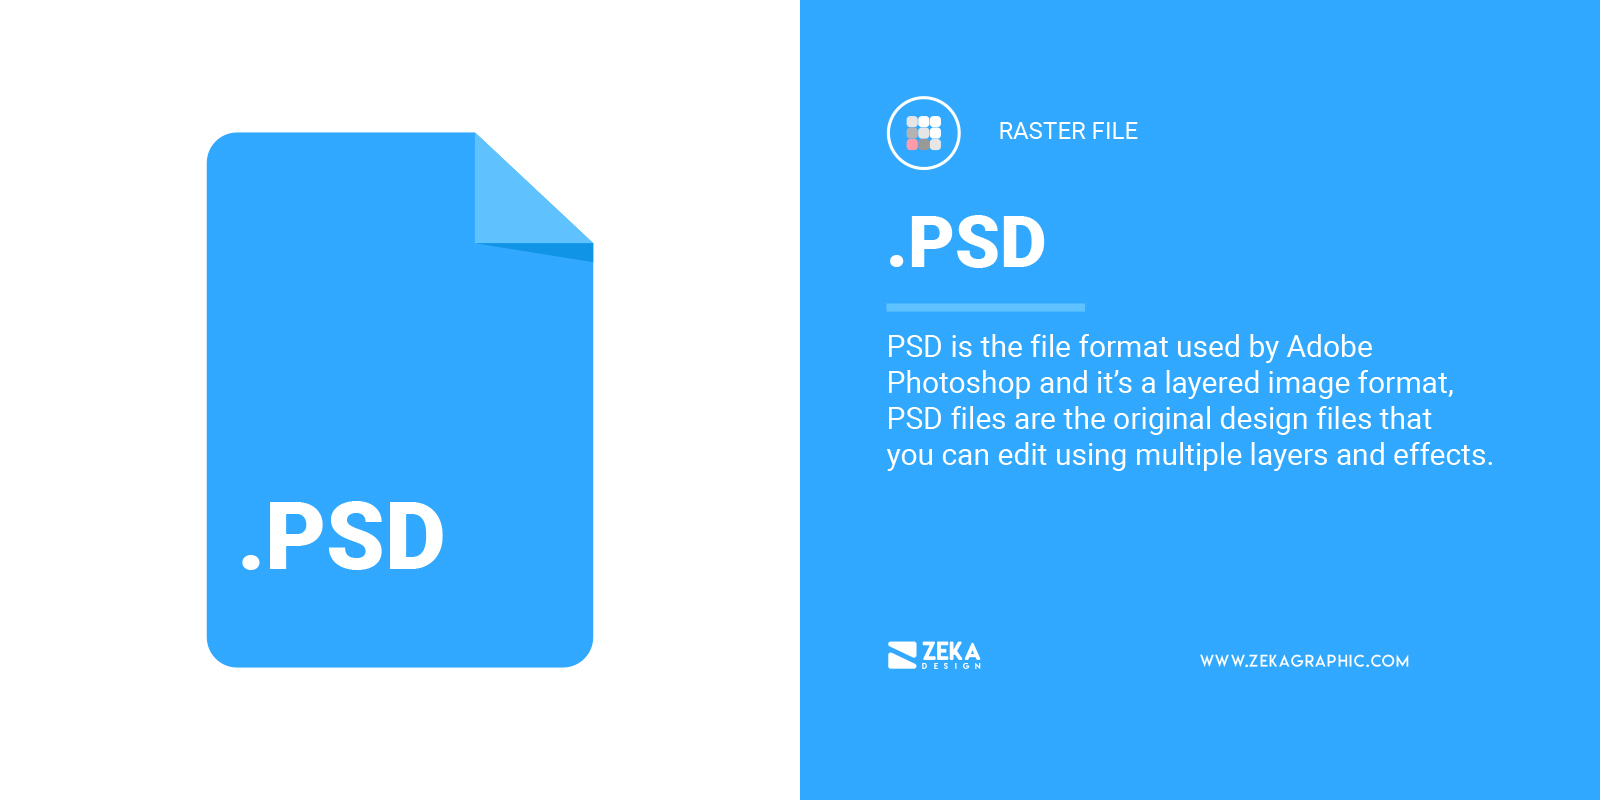 PSD File Format in Graphic Design Explained